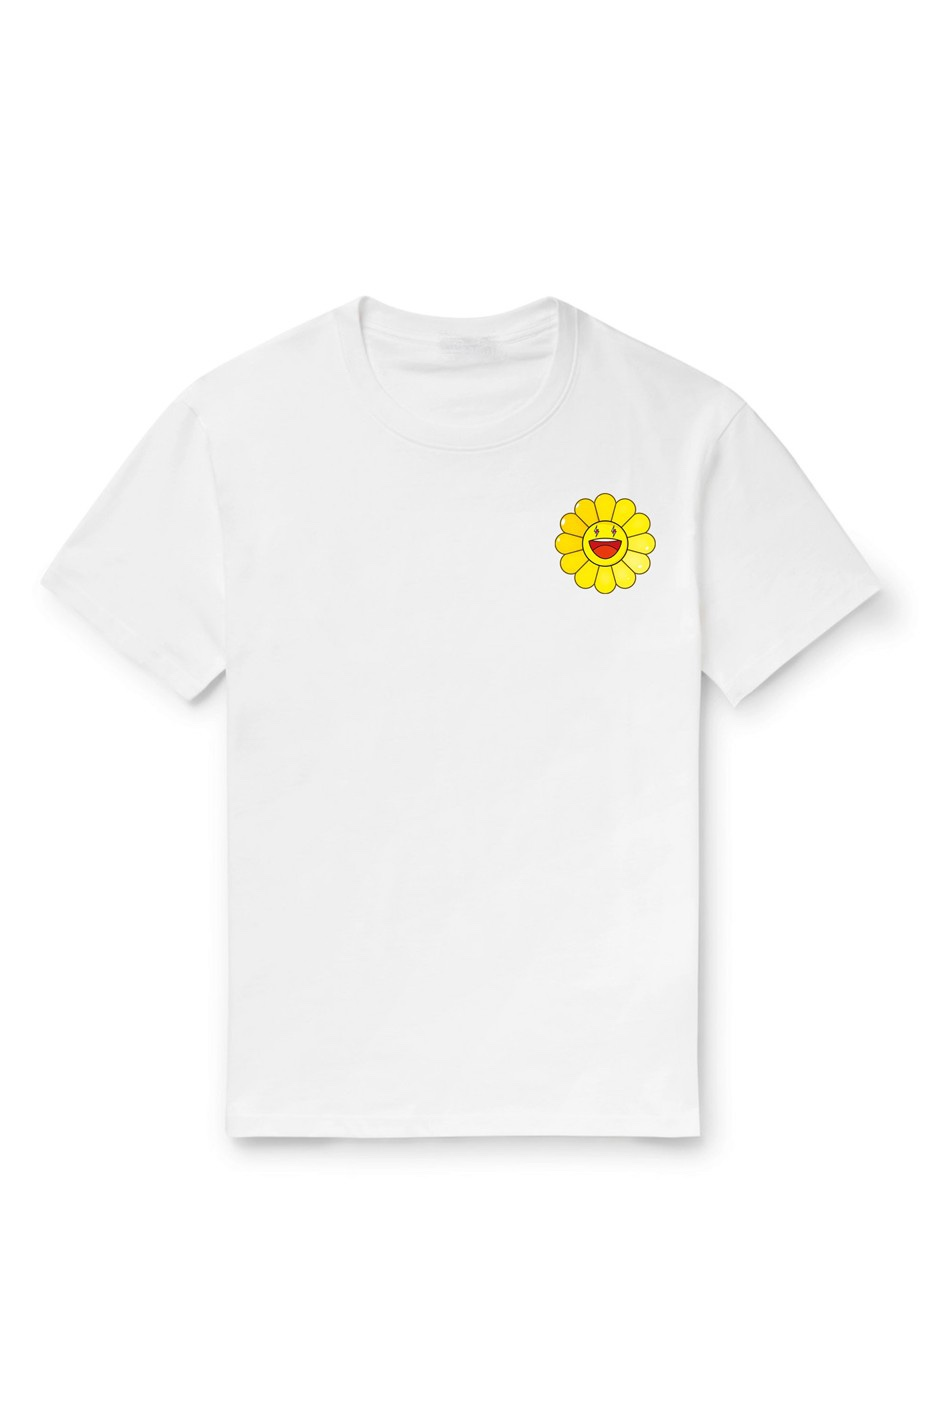 Takashi Murakami x J Balvin Capsule Collection T-shirt